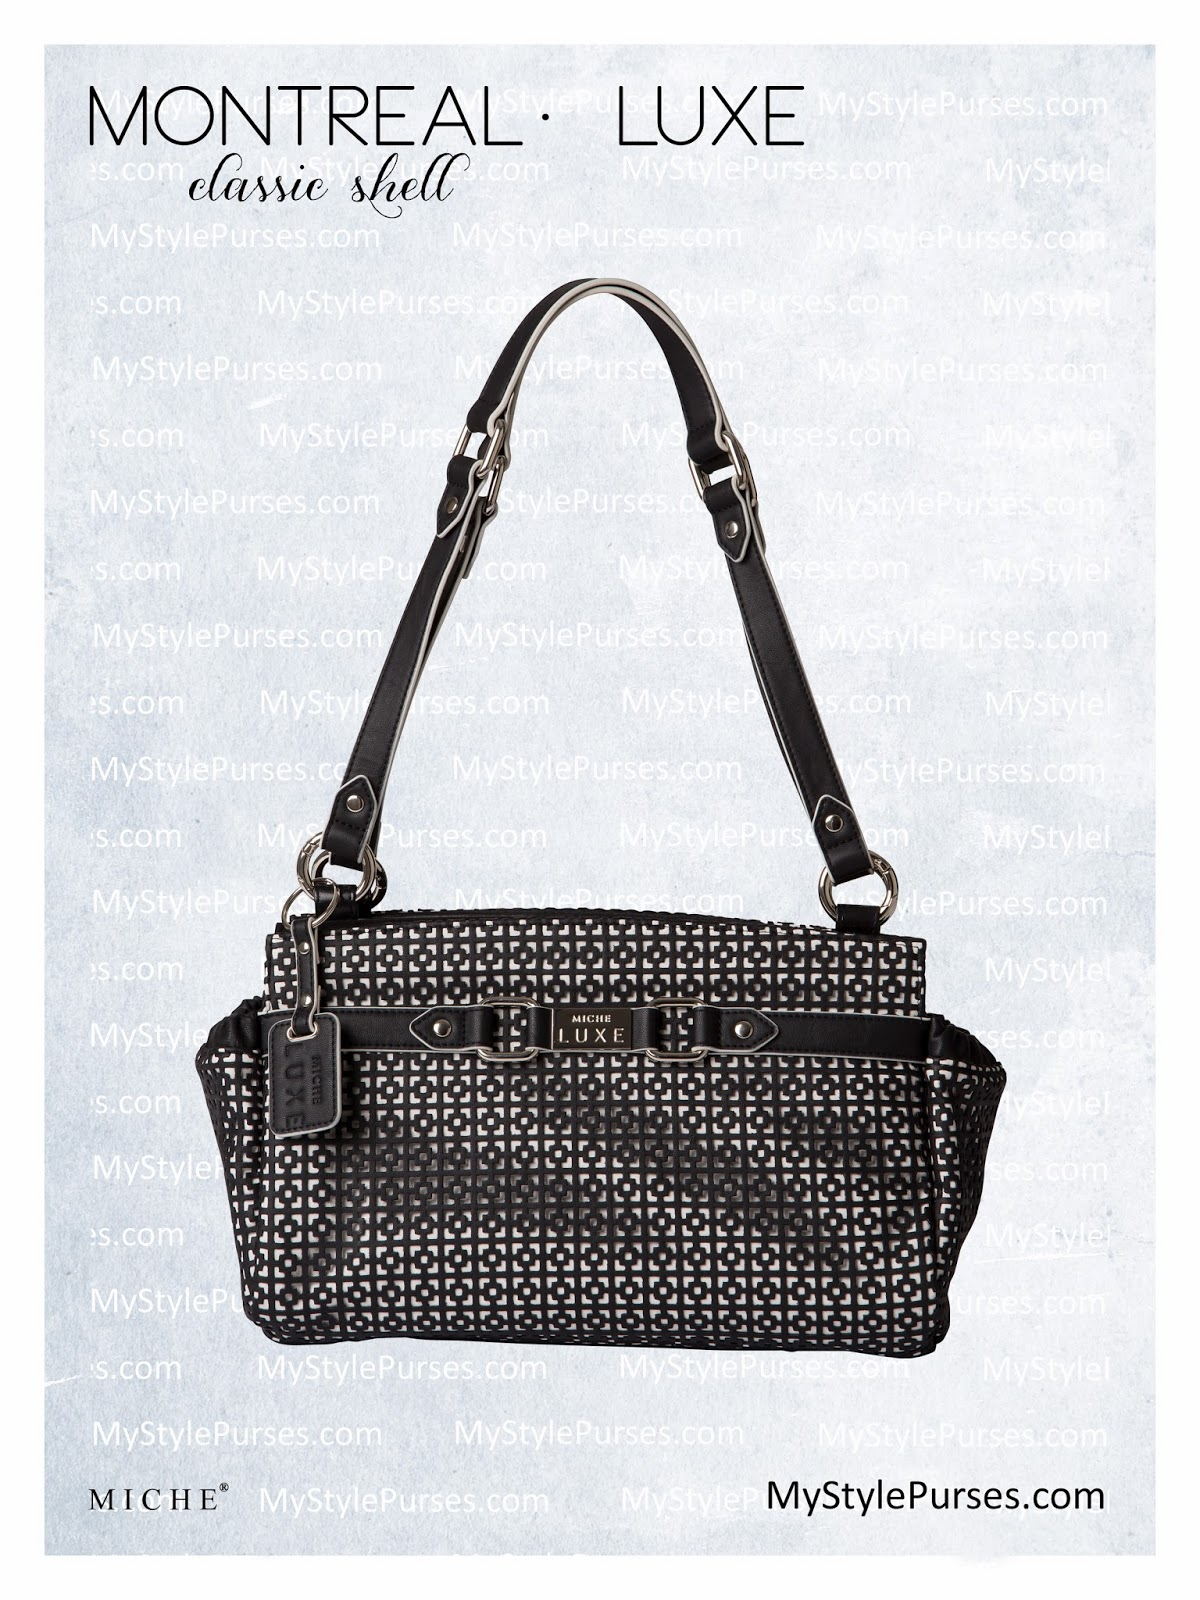 Miche Luxe Montreal Classic Shell | MyStylePurses.com